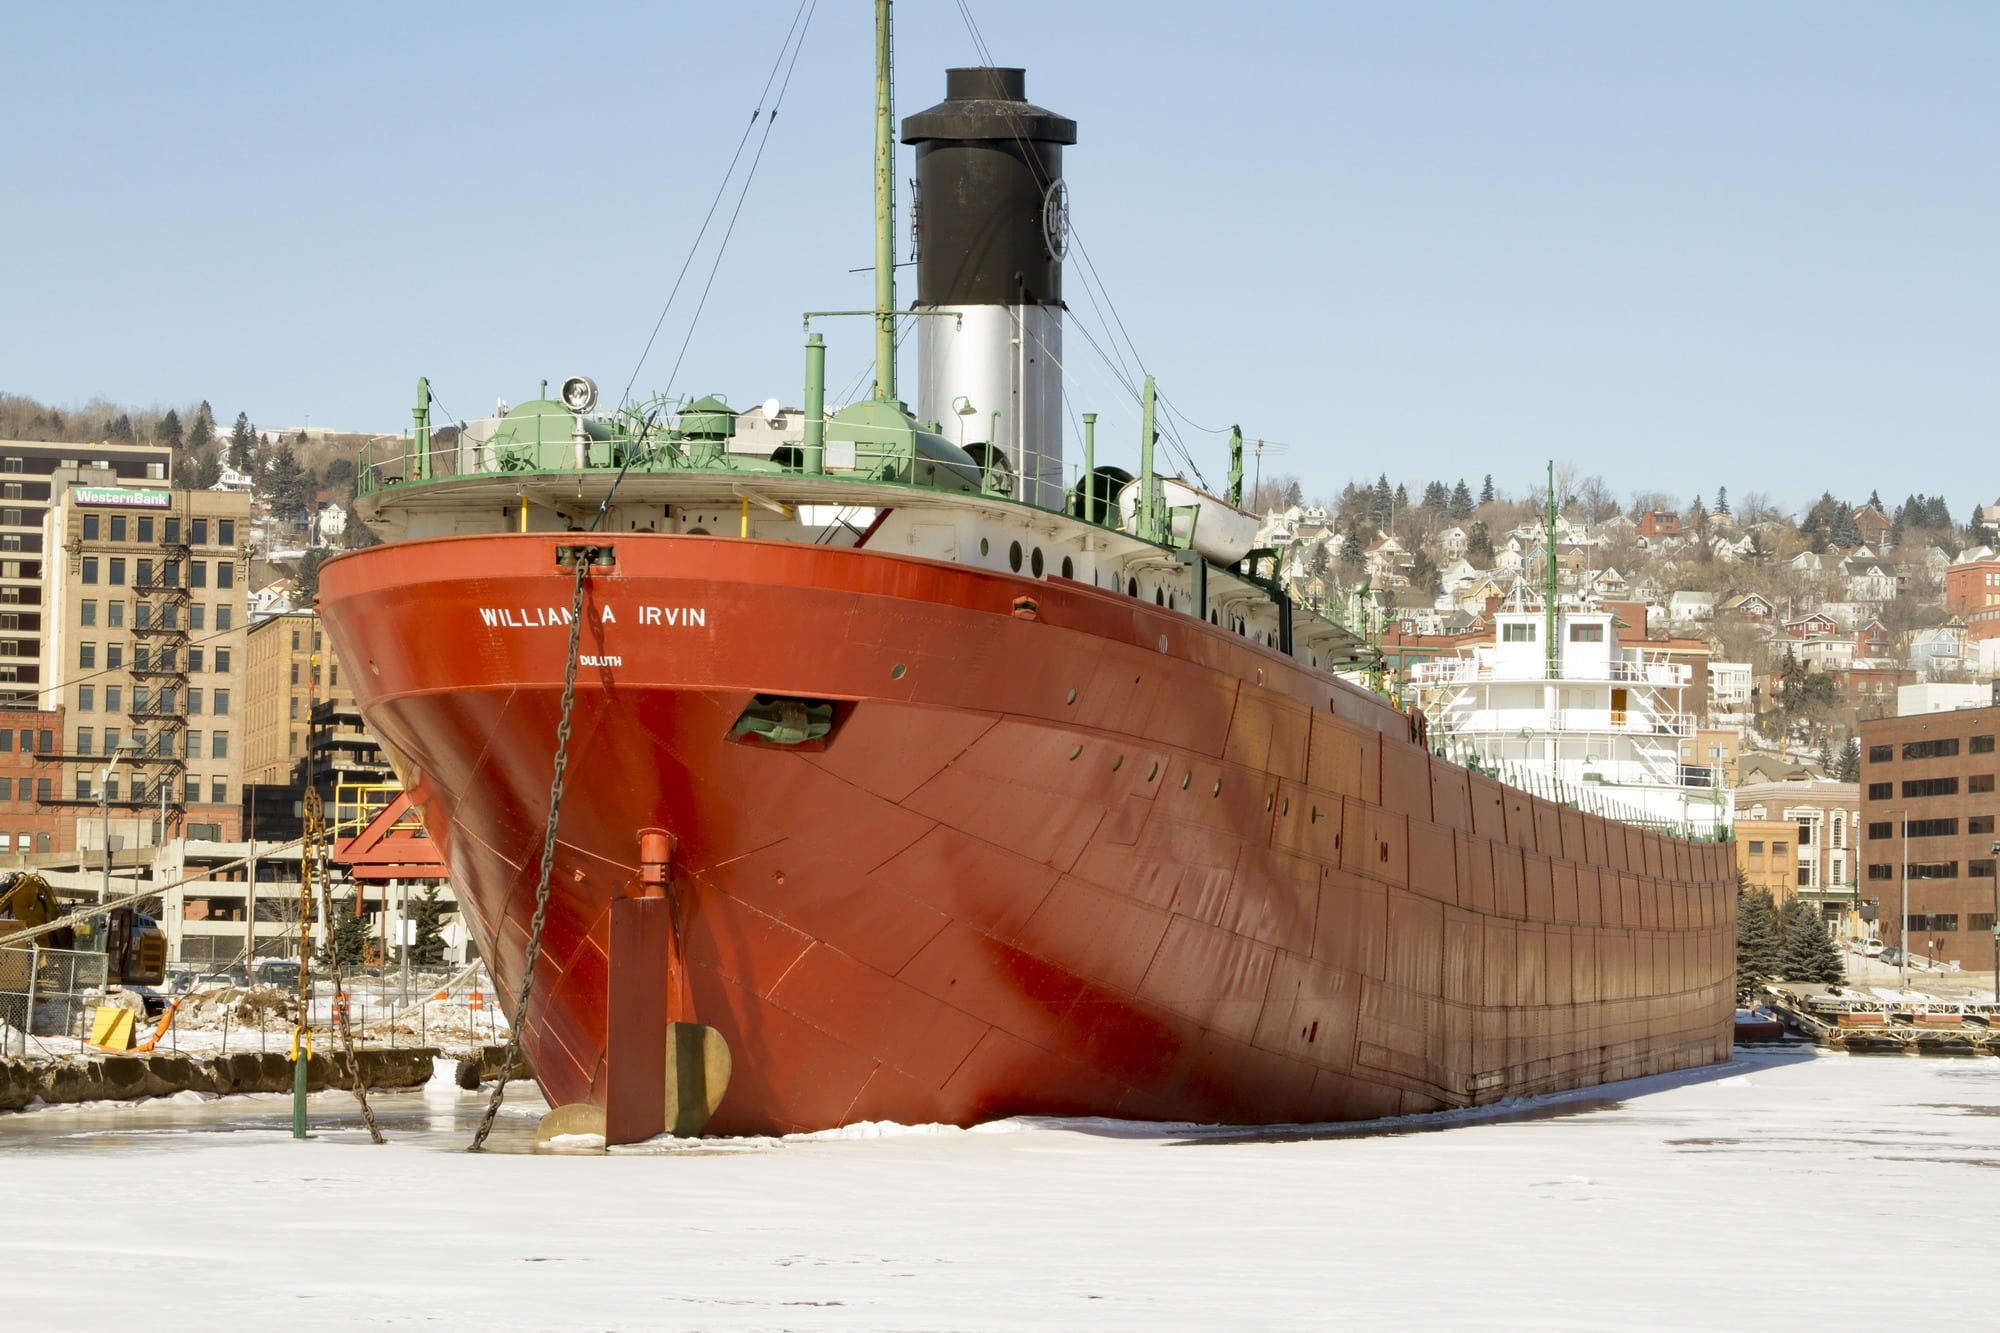 S.S. William A. Irvin Ore Boat Museum in winter in Duluth, Minnesota